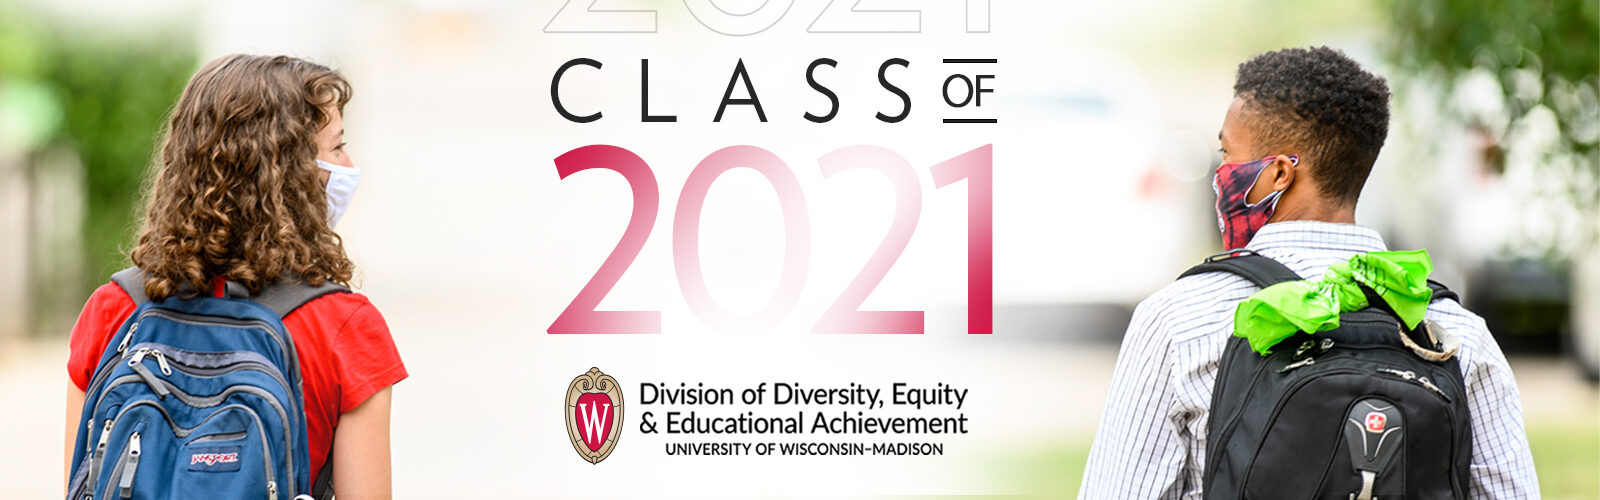 "Two people wearing backpacks and colorful face masks look at each other with the DDEEA logo and ""Class of 2021"" inserted in the space between them."